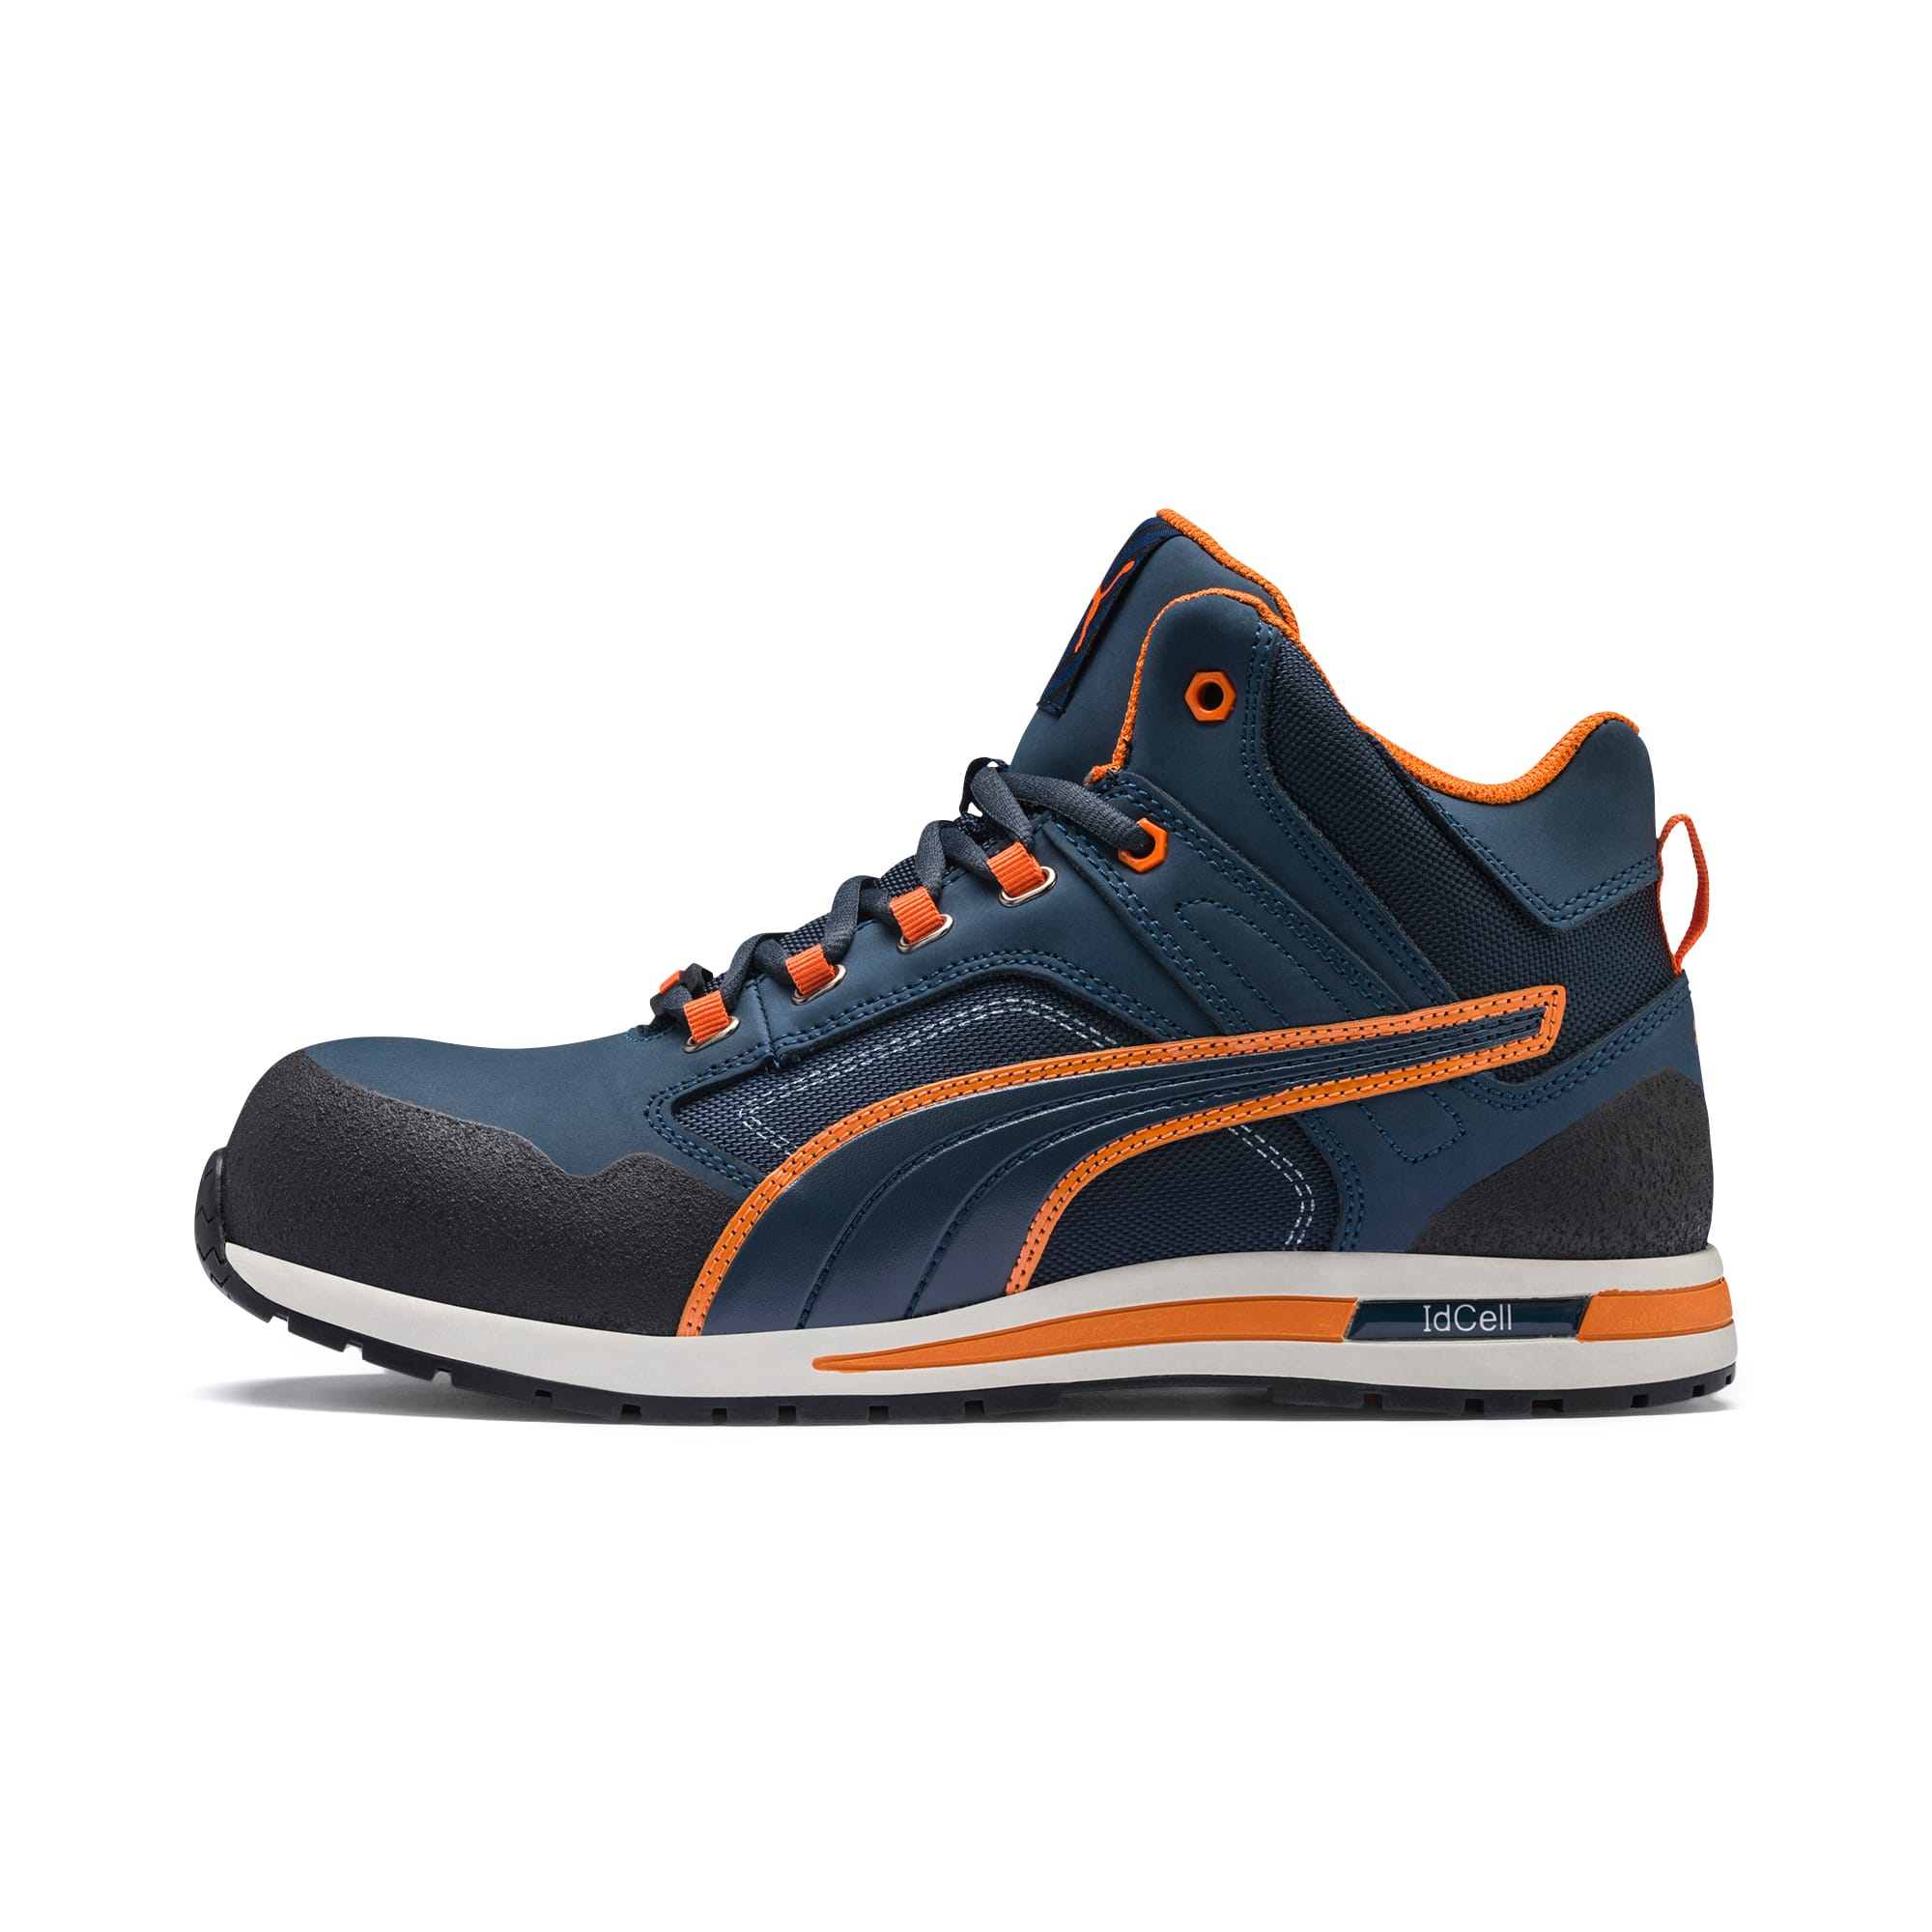 Puma S3 safety boots HRO